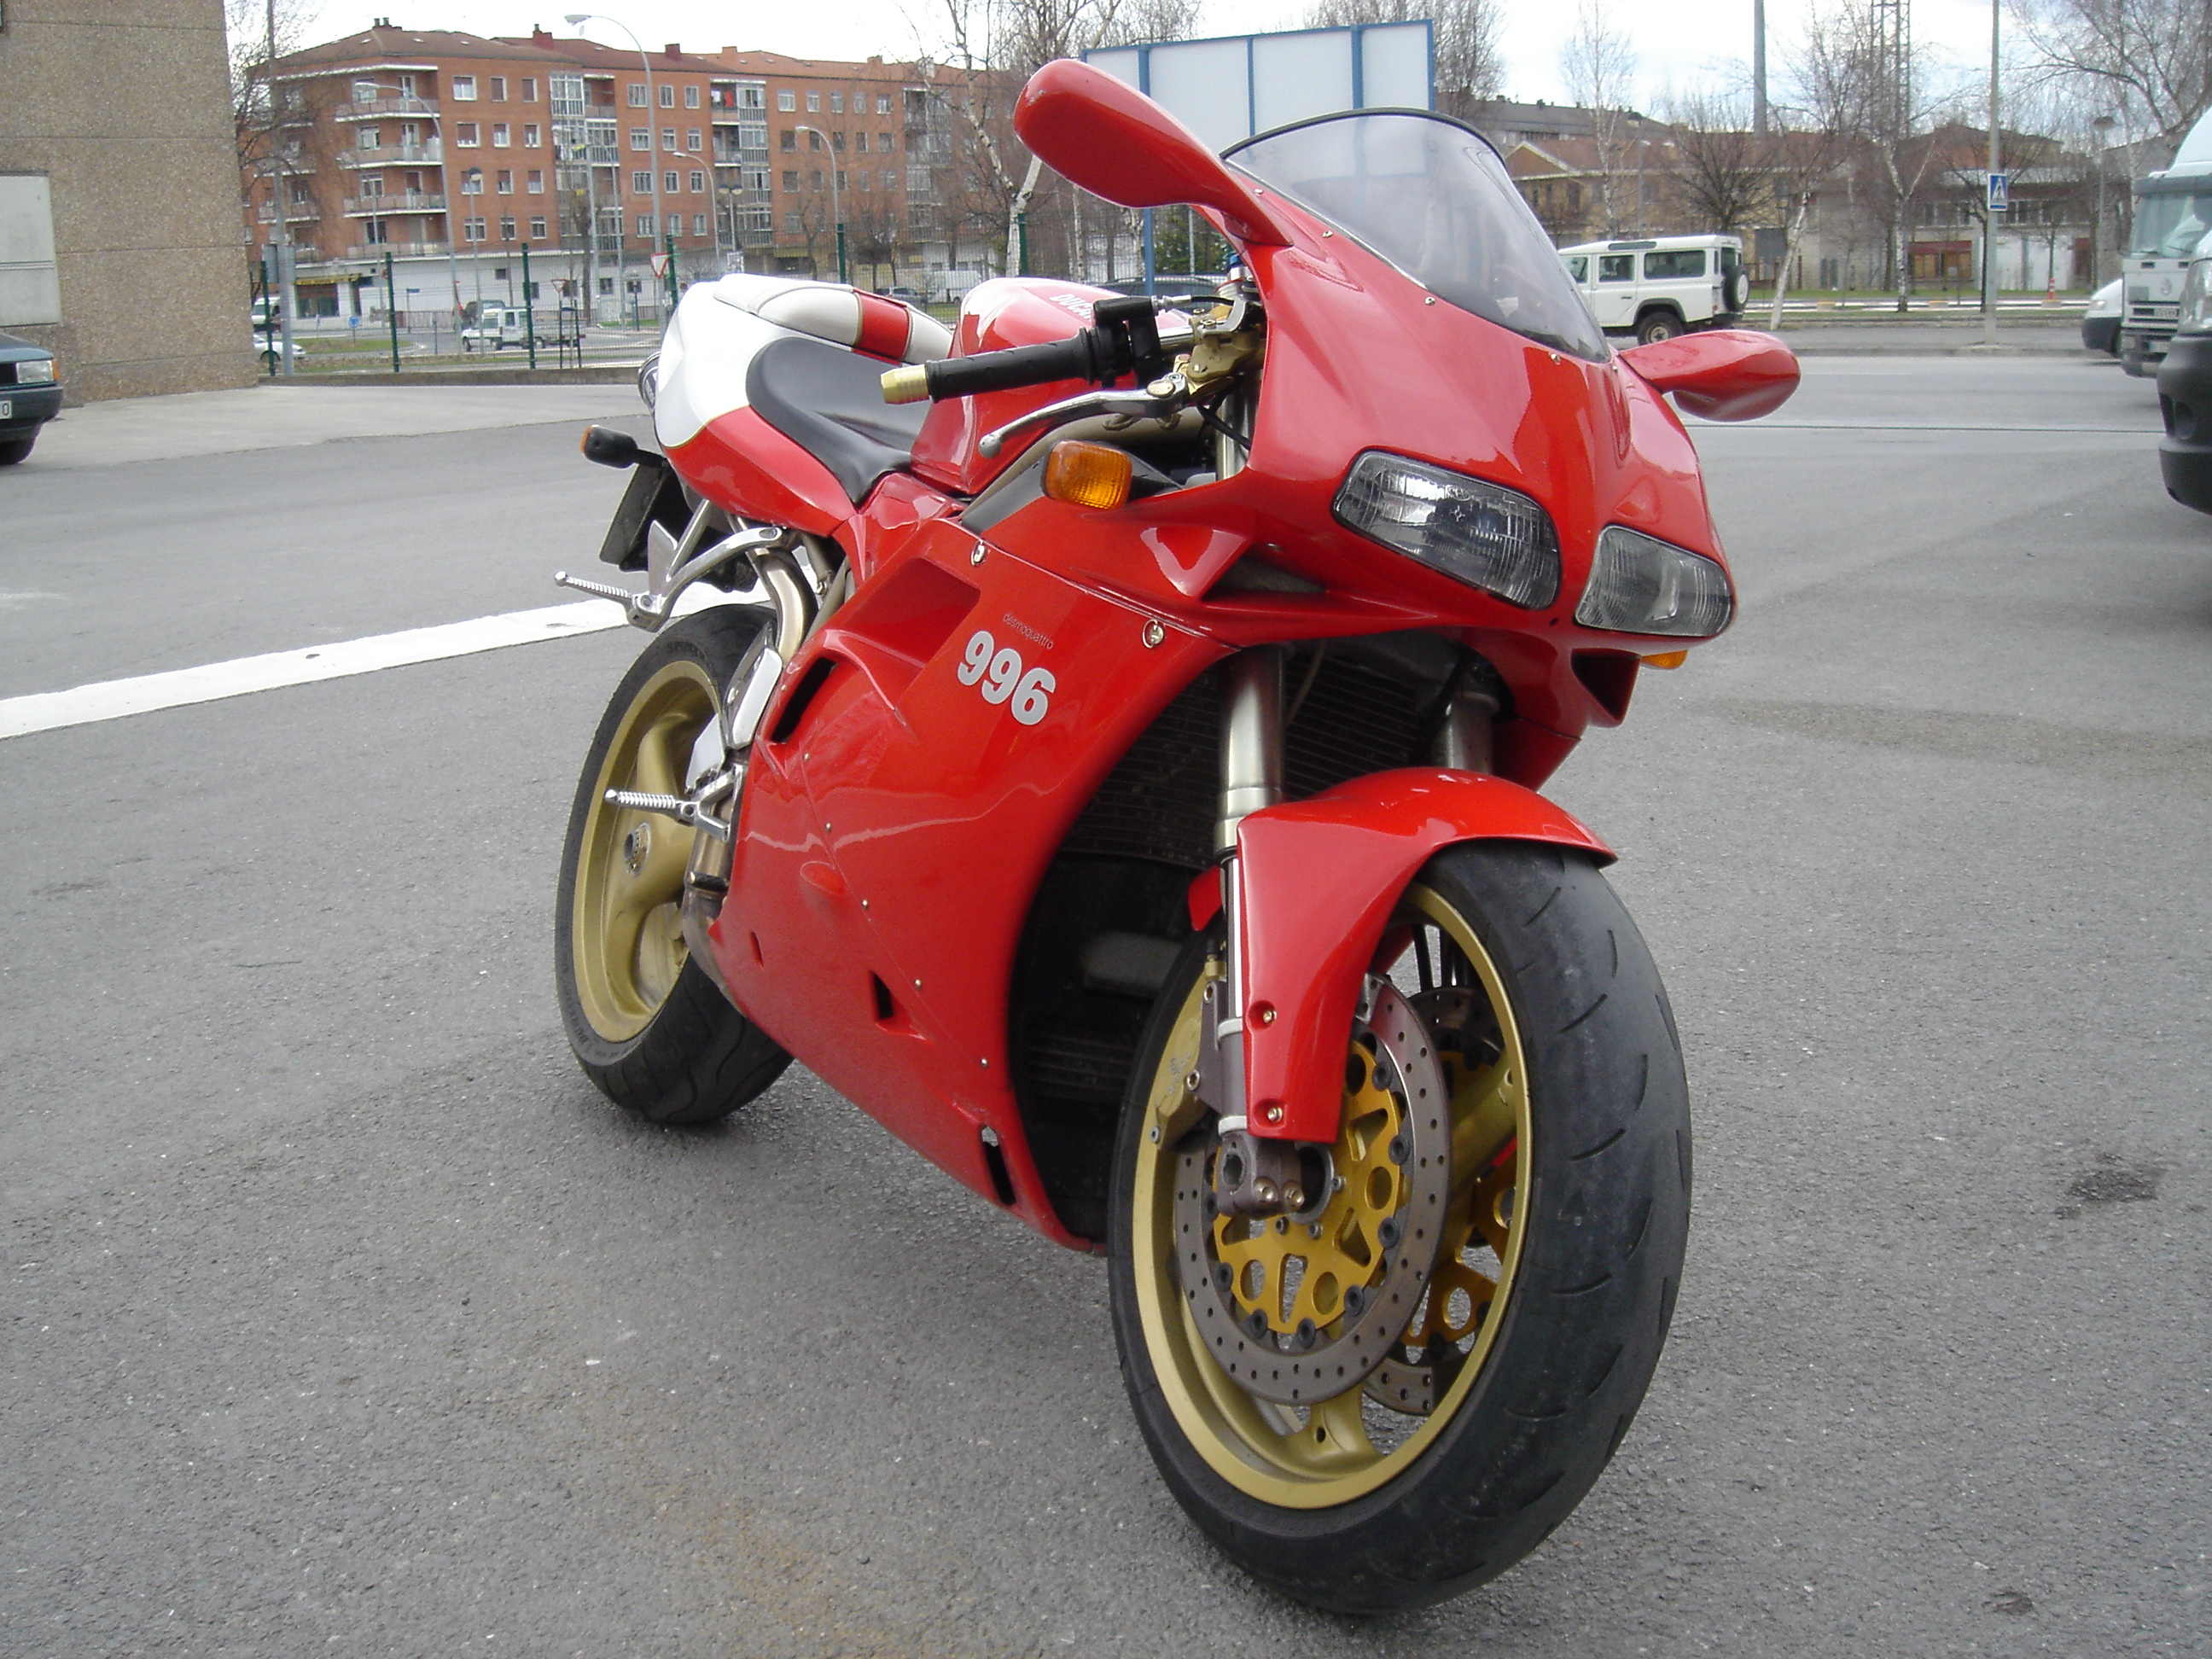 Ducati 996 2000 wallpapers #11238